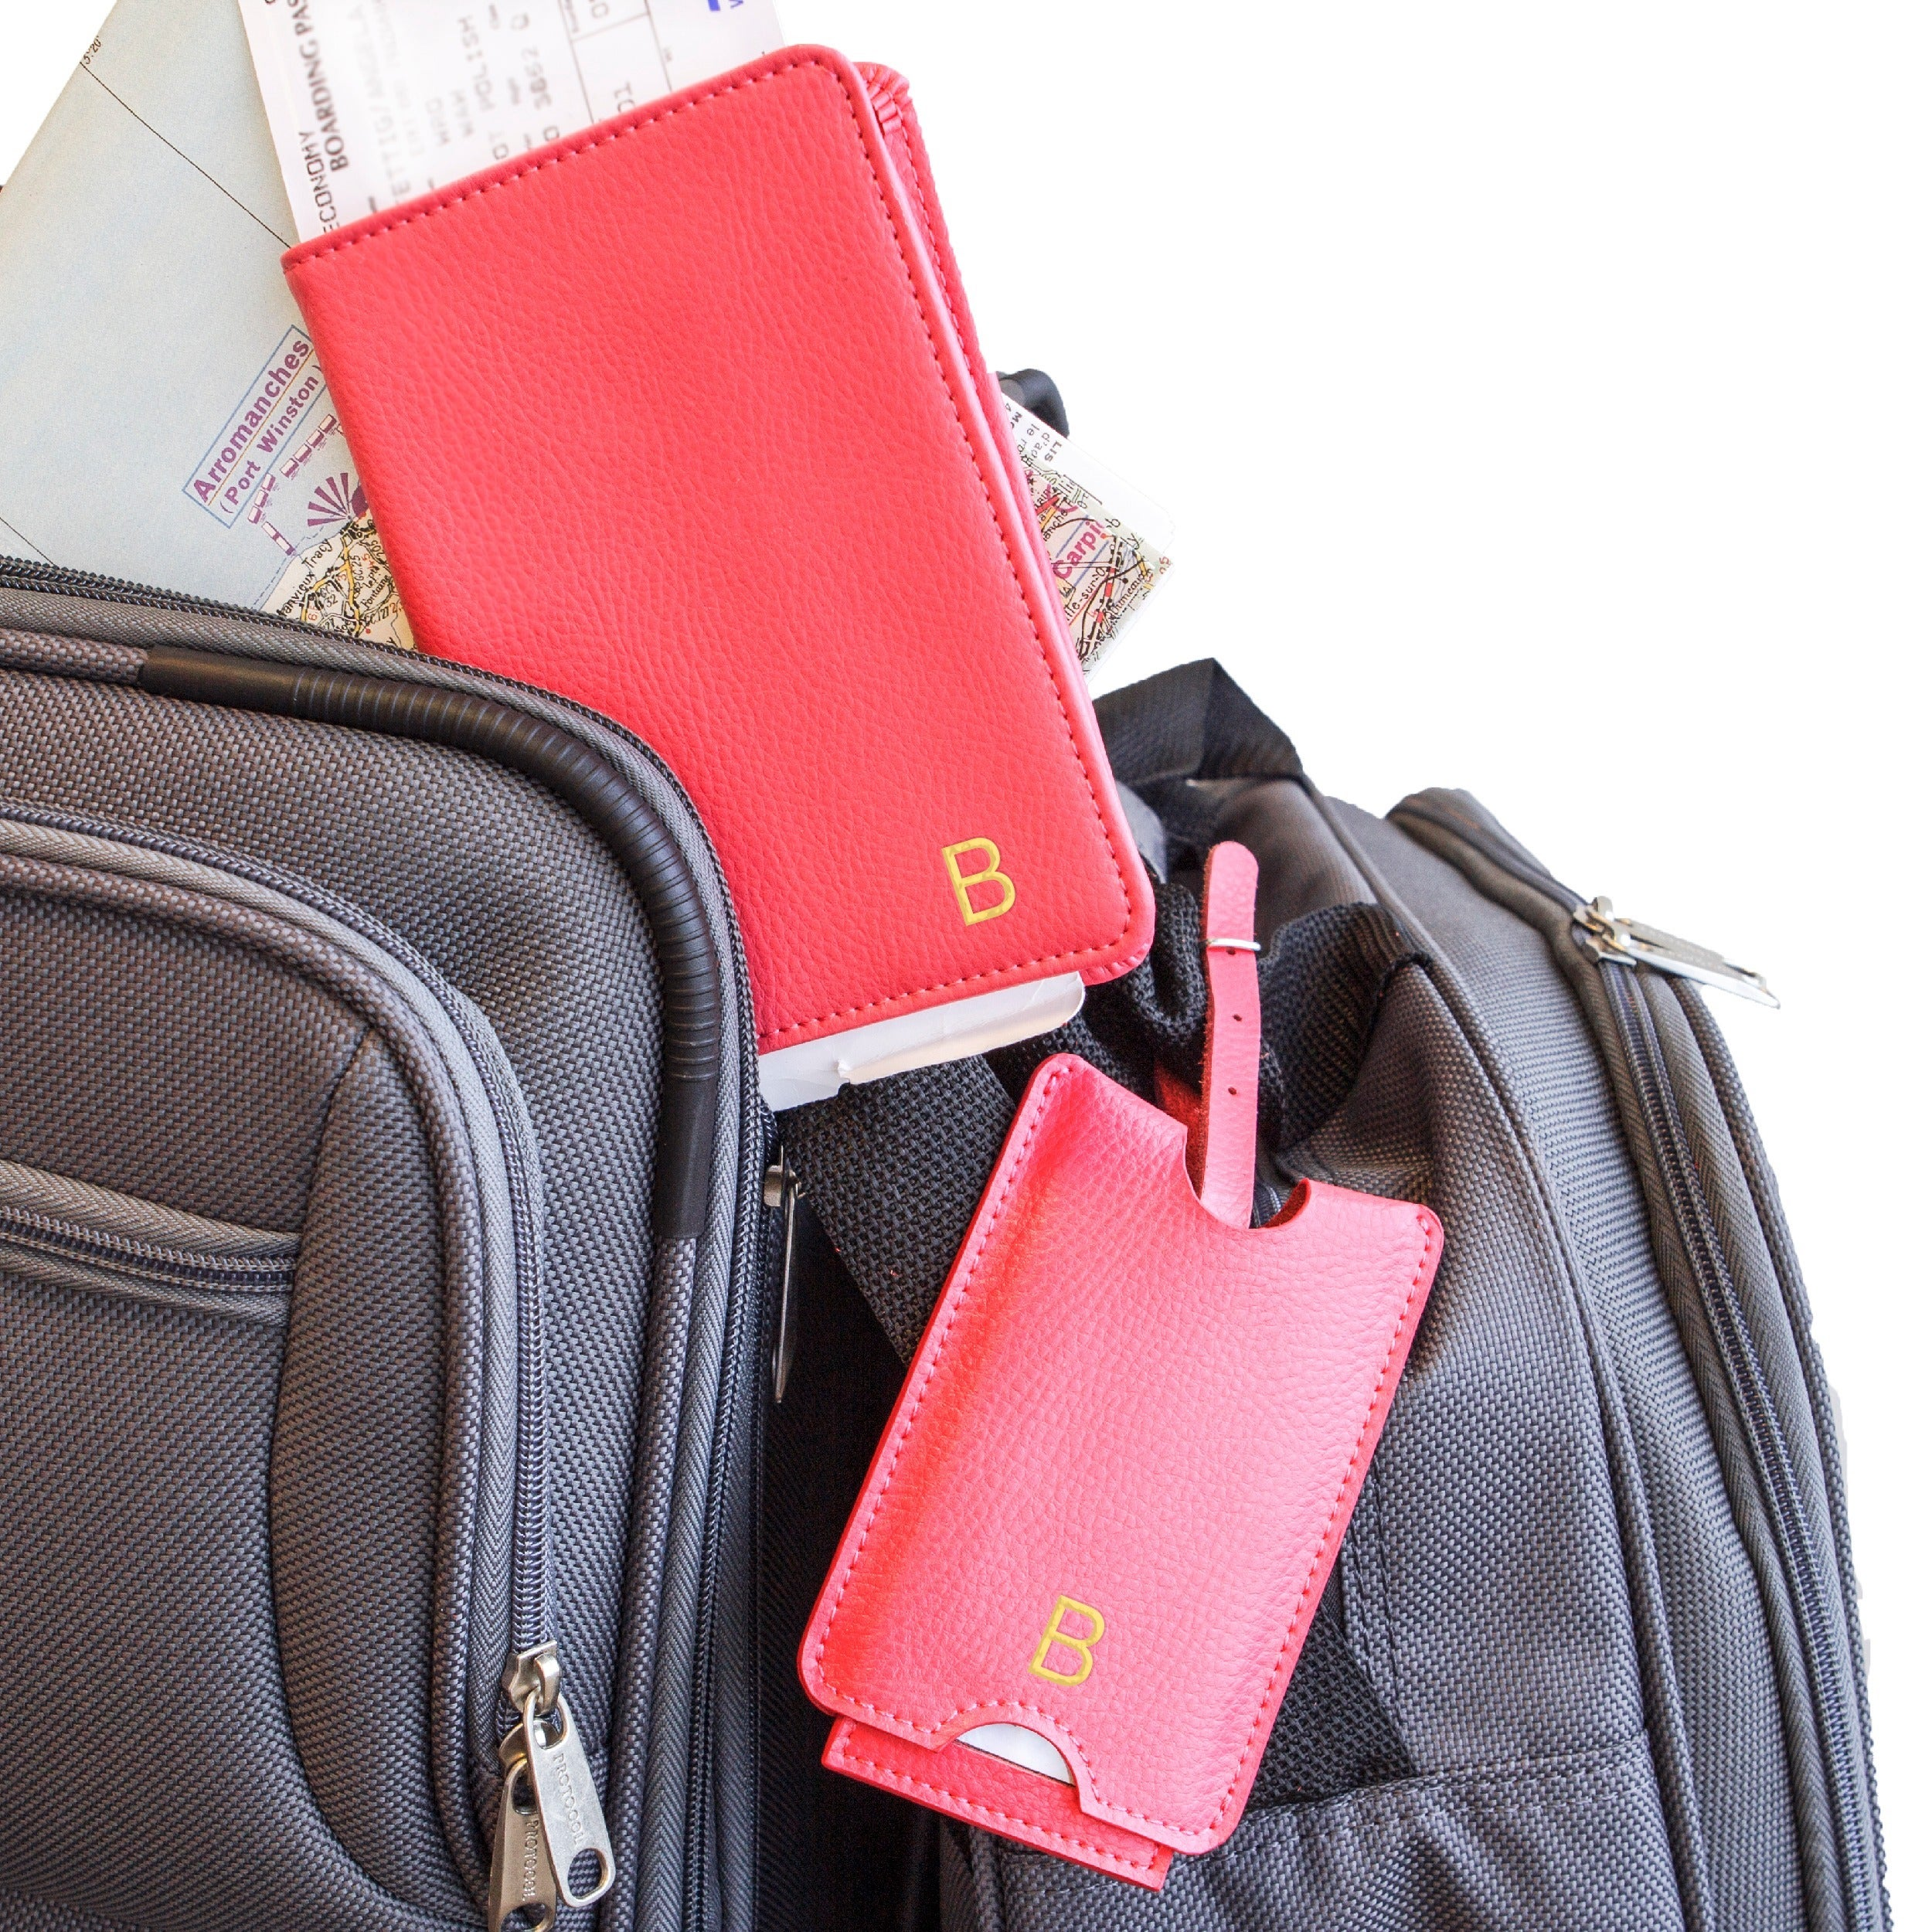 9659af83510 Shop Personalized Pink Leather Passport Holder   Luggage Tag Set - Free  Shipping Today - Overstock - 10620139